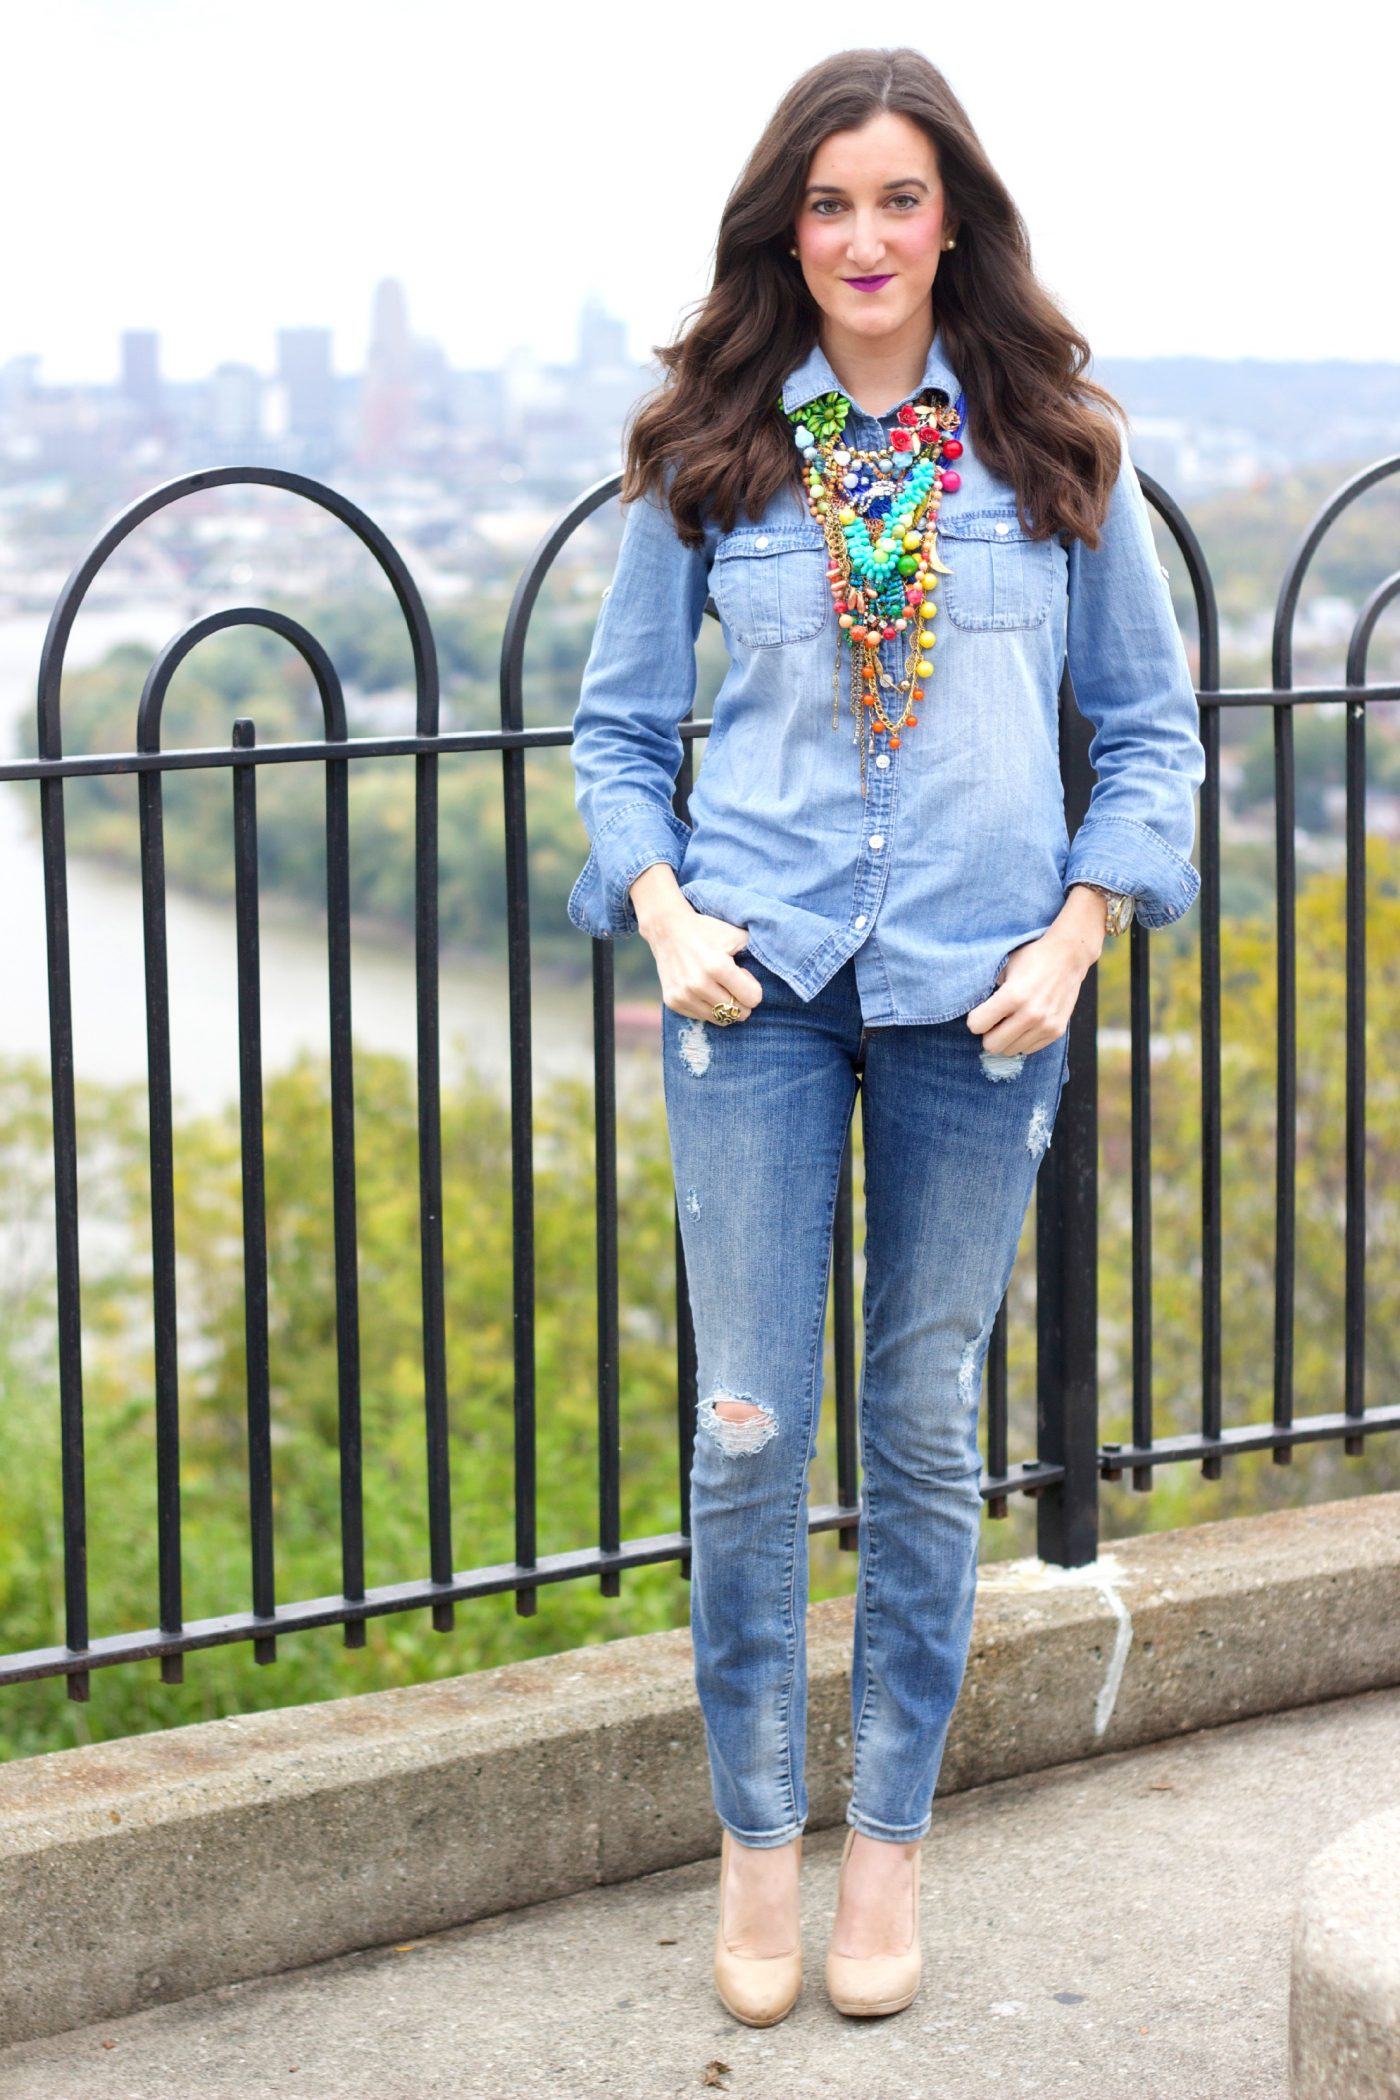 Colorful Statement Necklace Denim Outfit